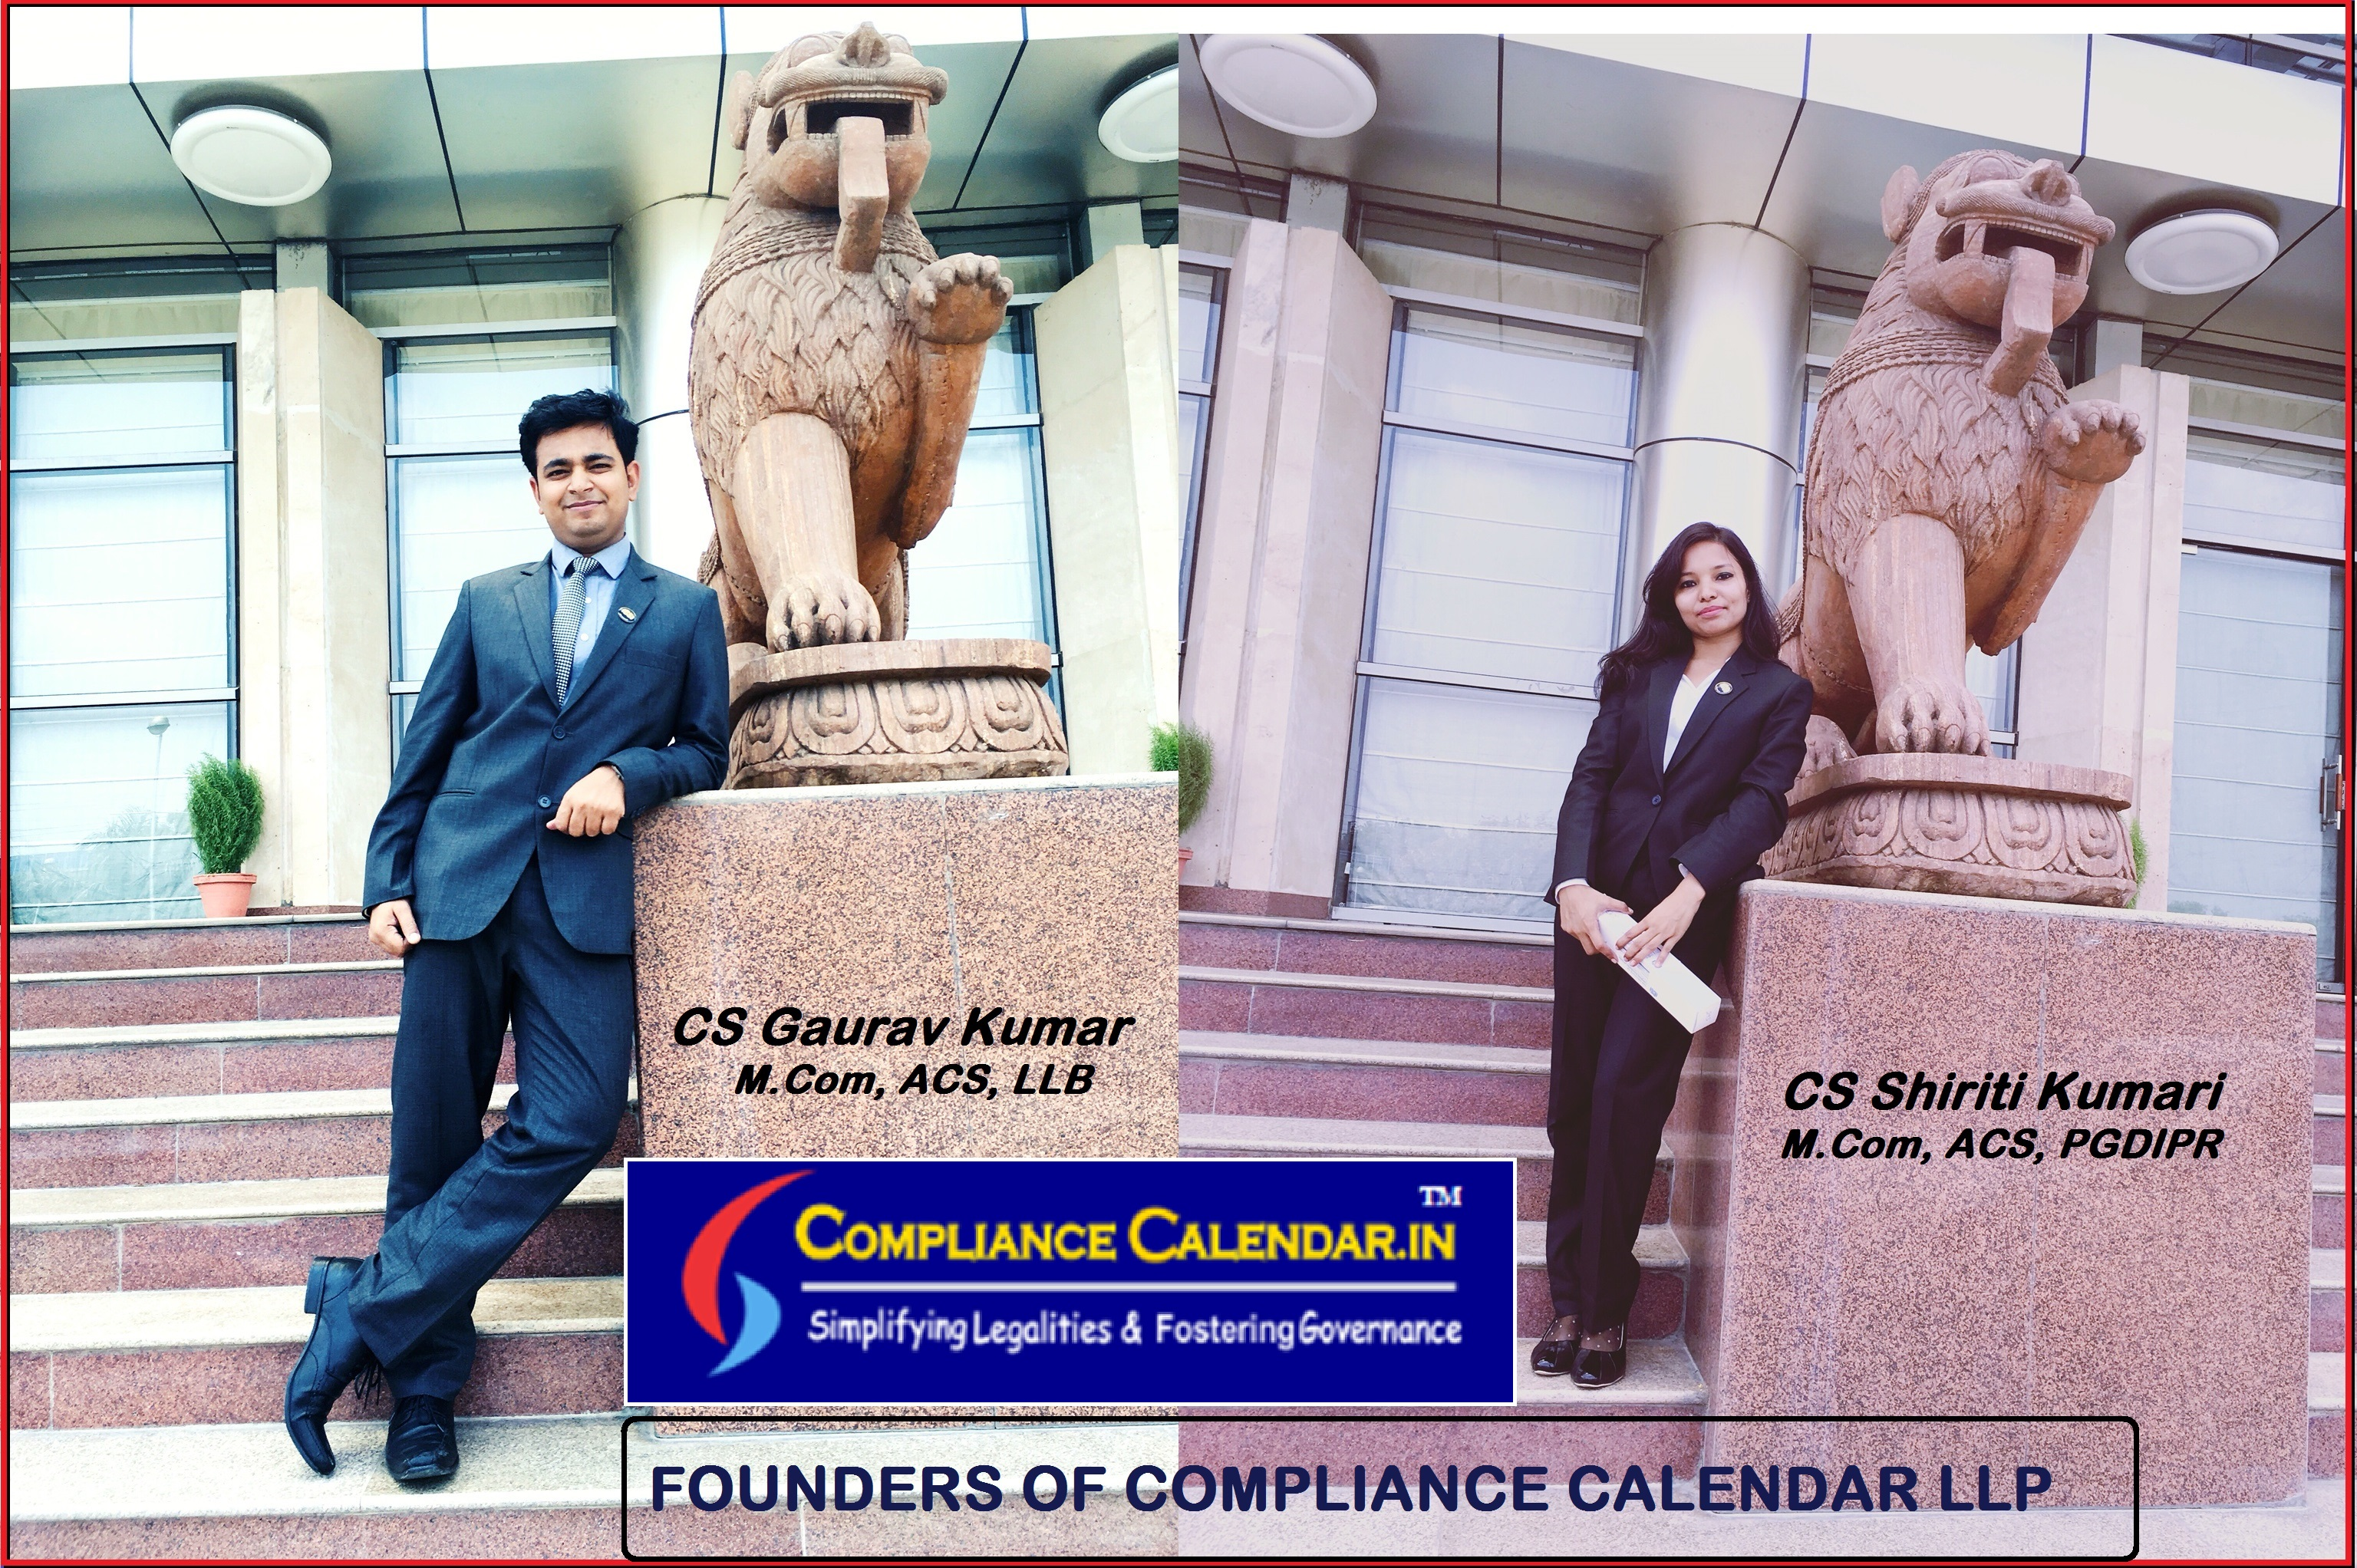 Founders of Compliance Calendar LLP